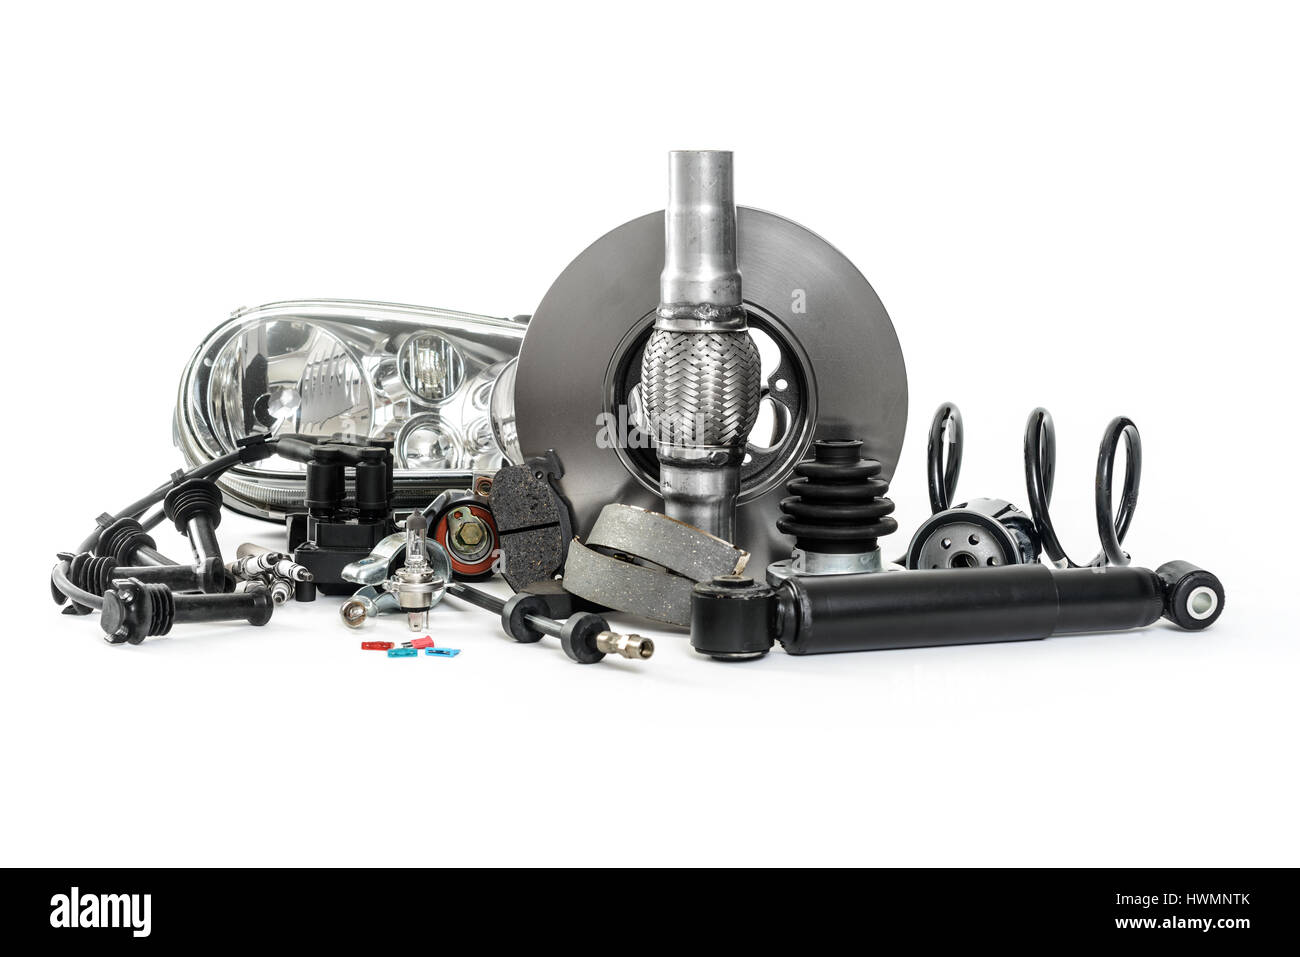 New car parts for repair, service for your car, brakes and various ...